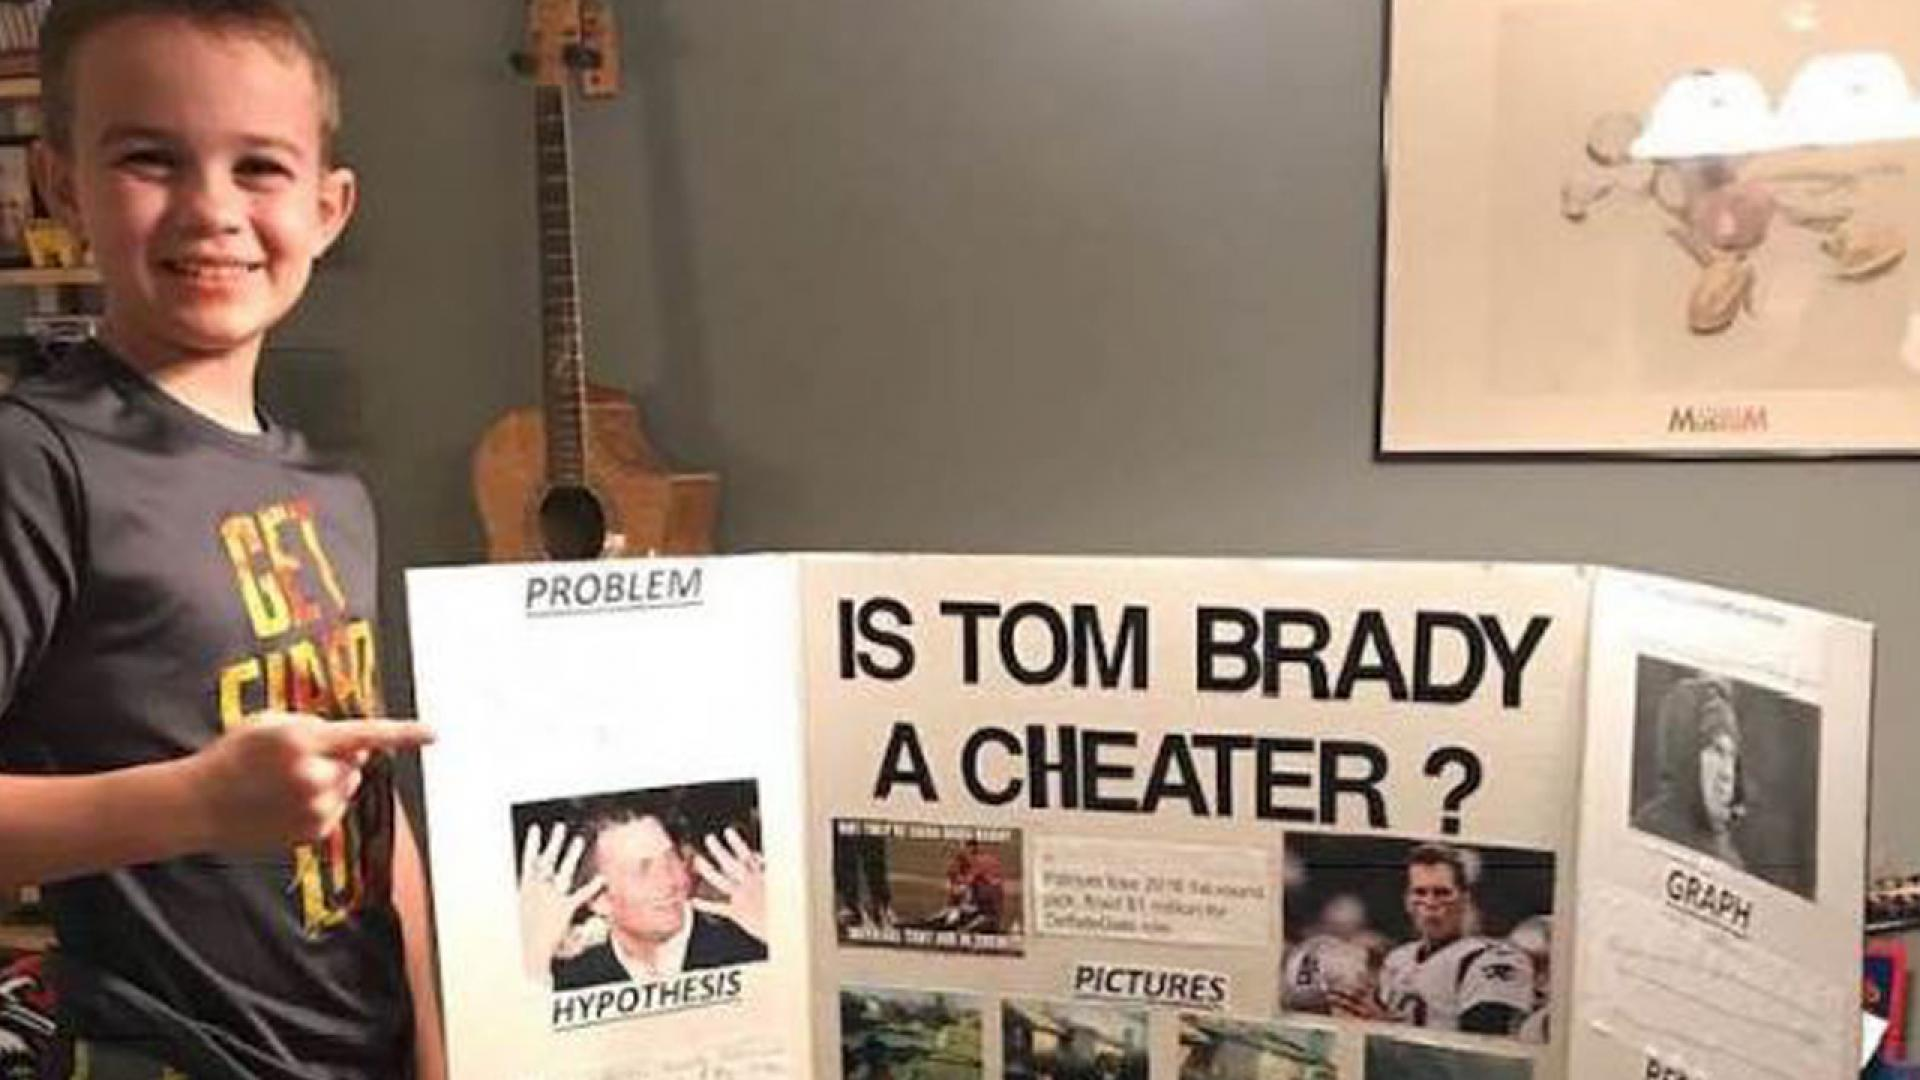 Ten-year-old wins science fair with project declaring Tom Brady is a cheater.